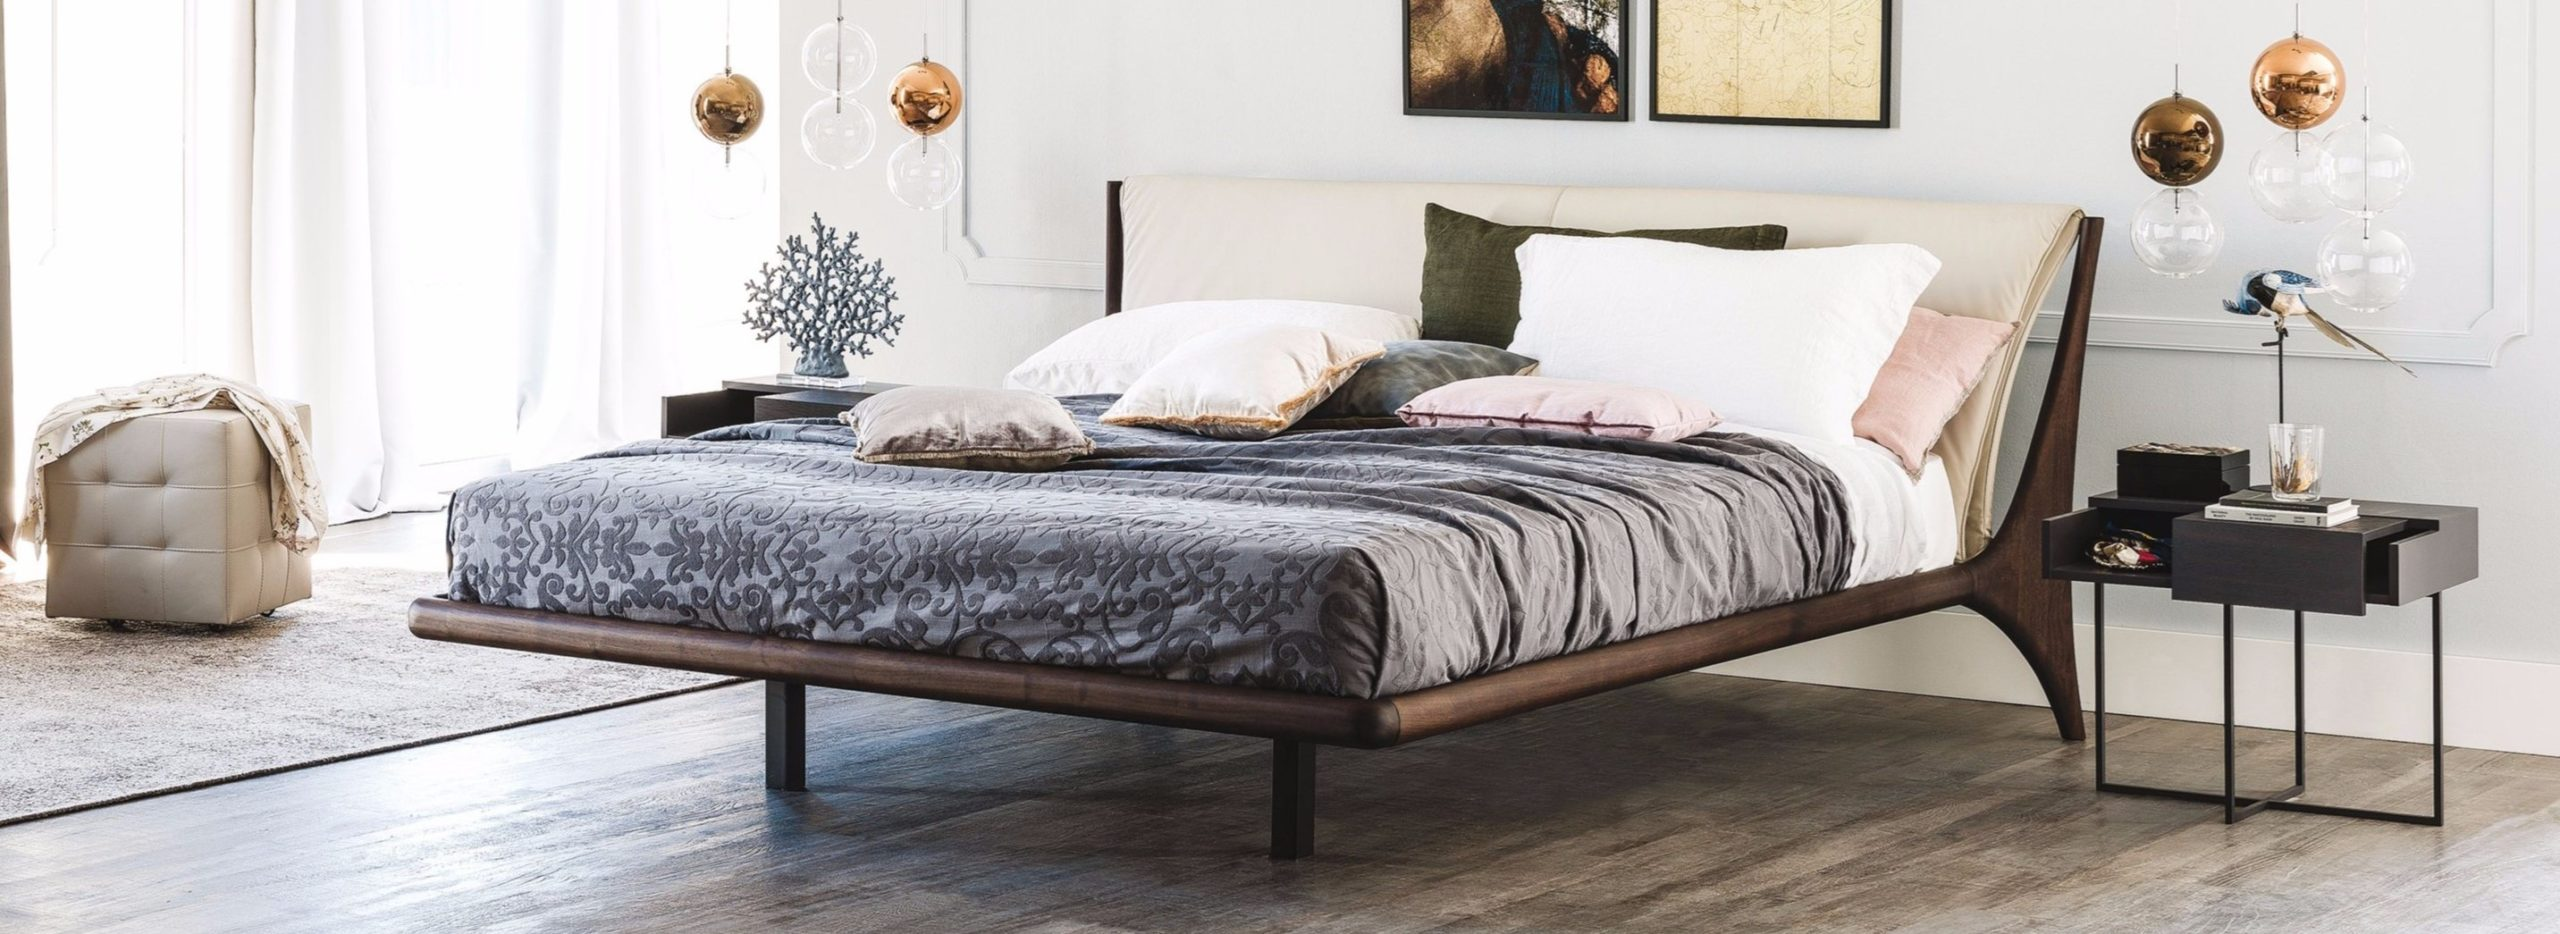 Furniture Plus - Beds - Bed Room